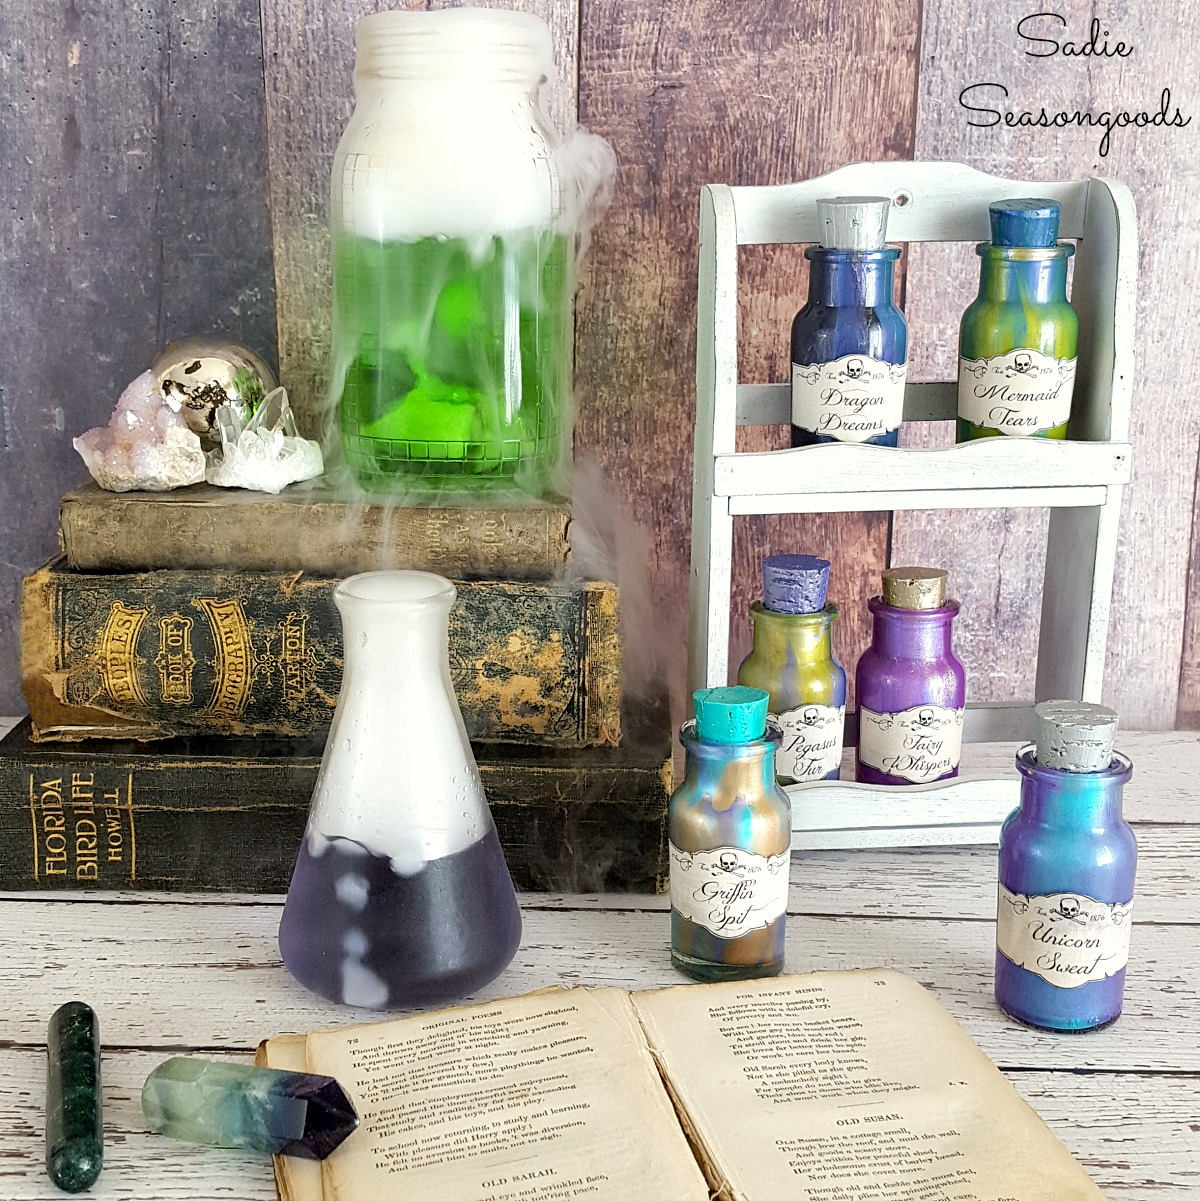 Harry Potter potion bottles with color shift paints in a vintage spice rack for Halloween magic decor by Sadie Seasongoods